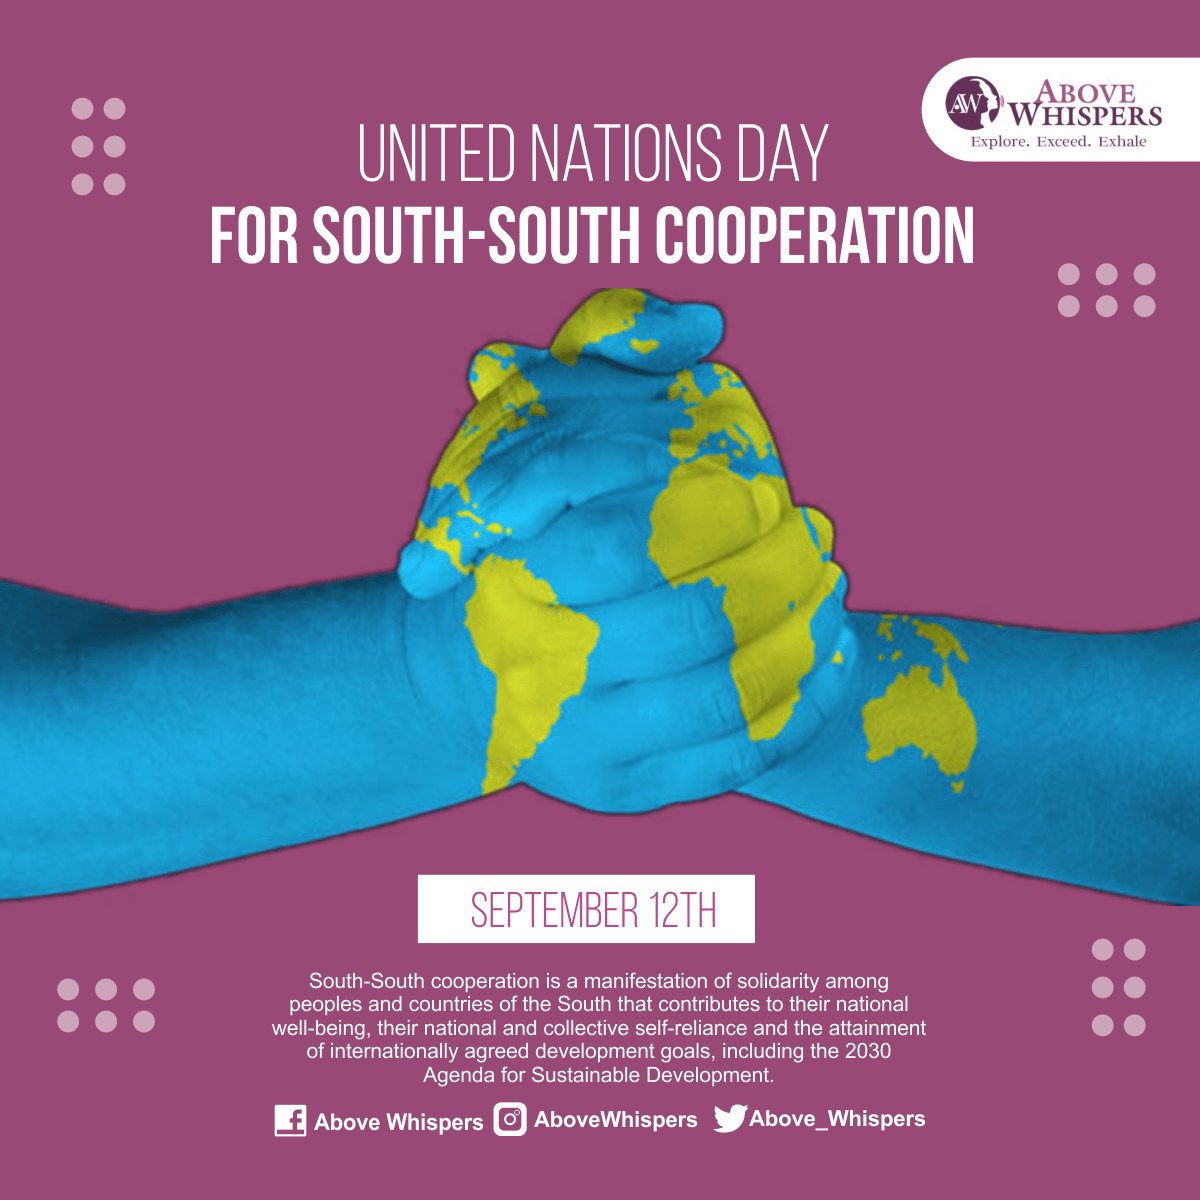 UND - South-South Cooperation